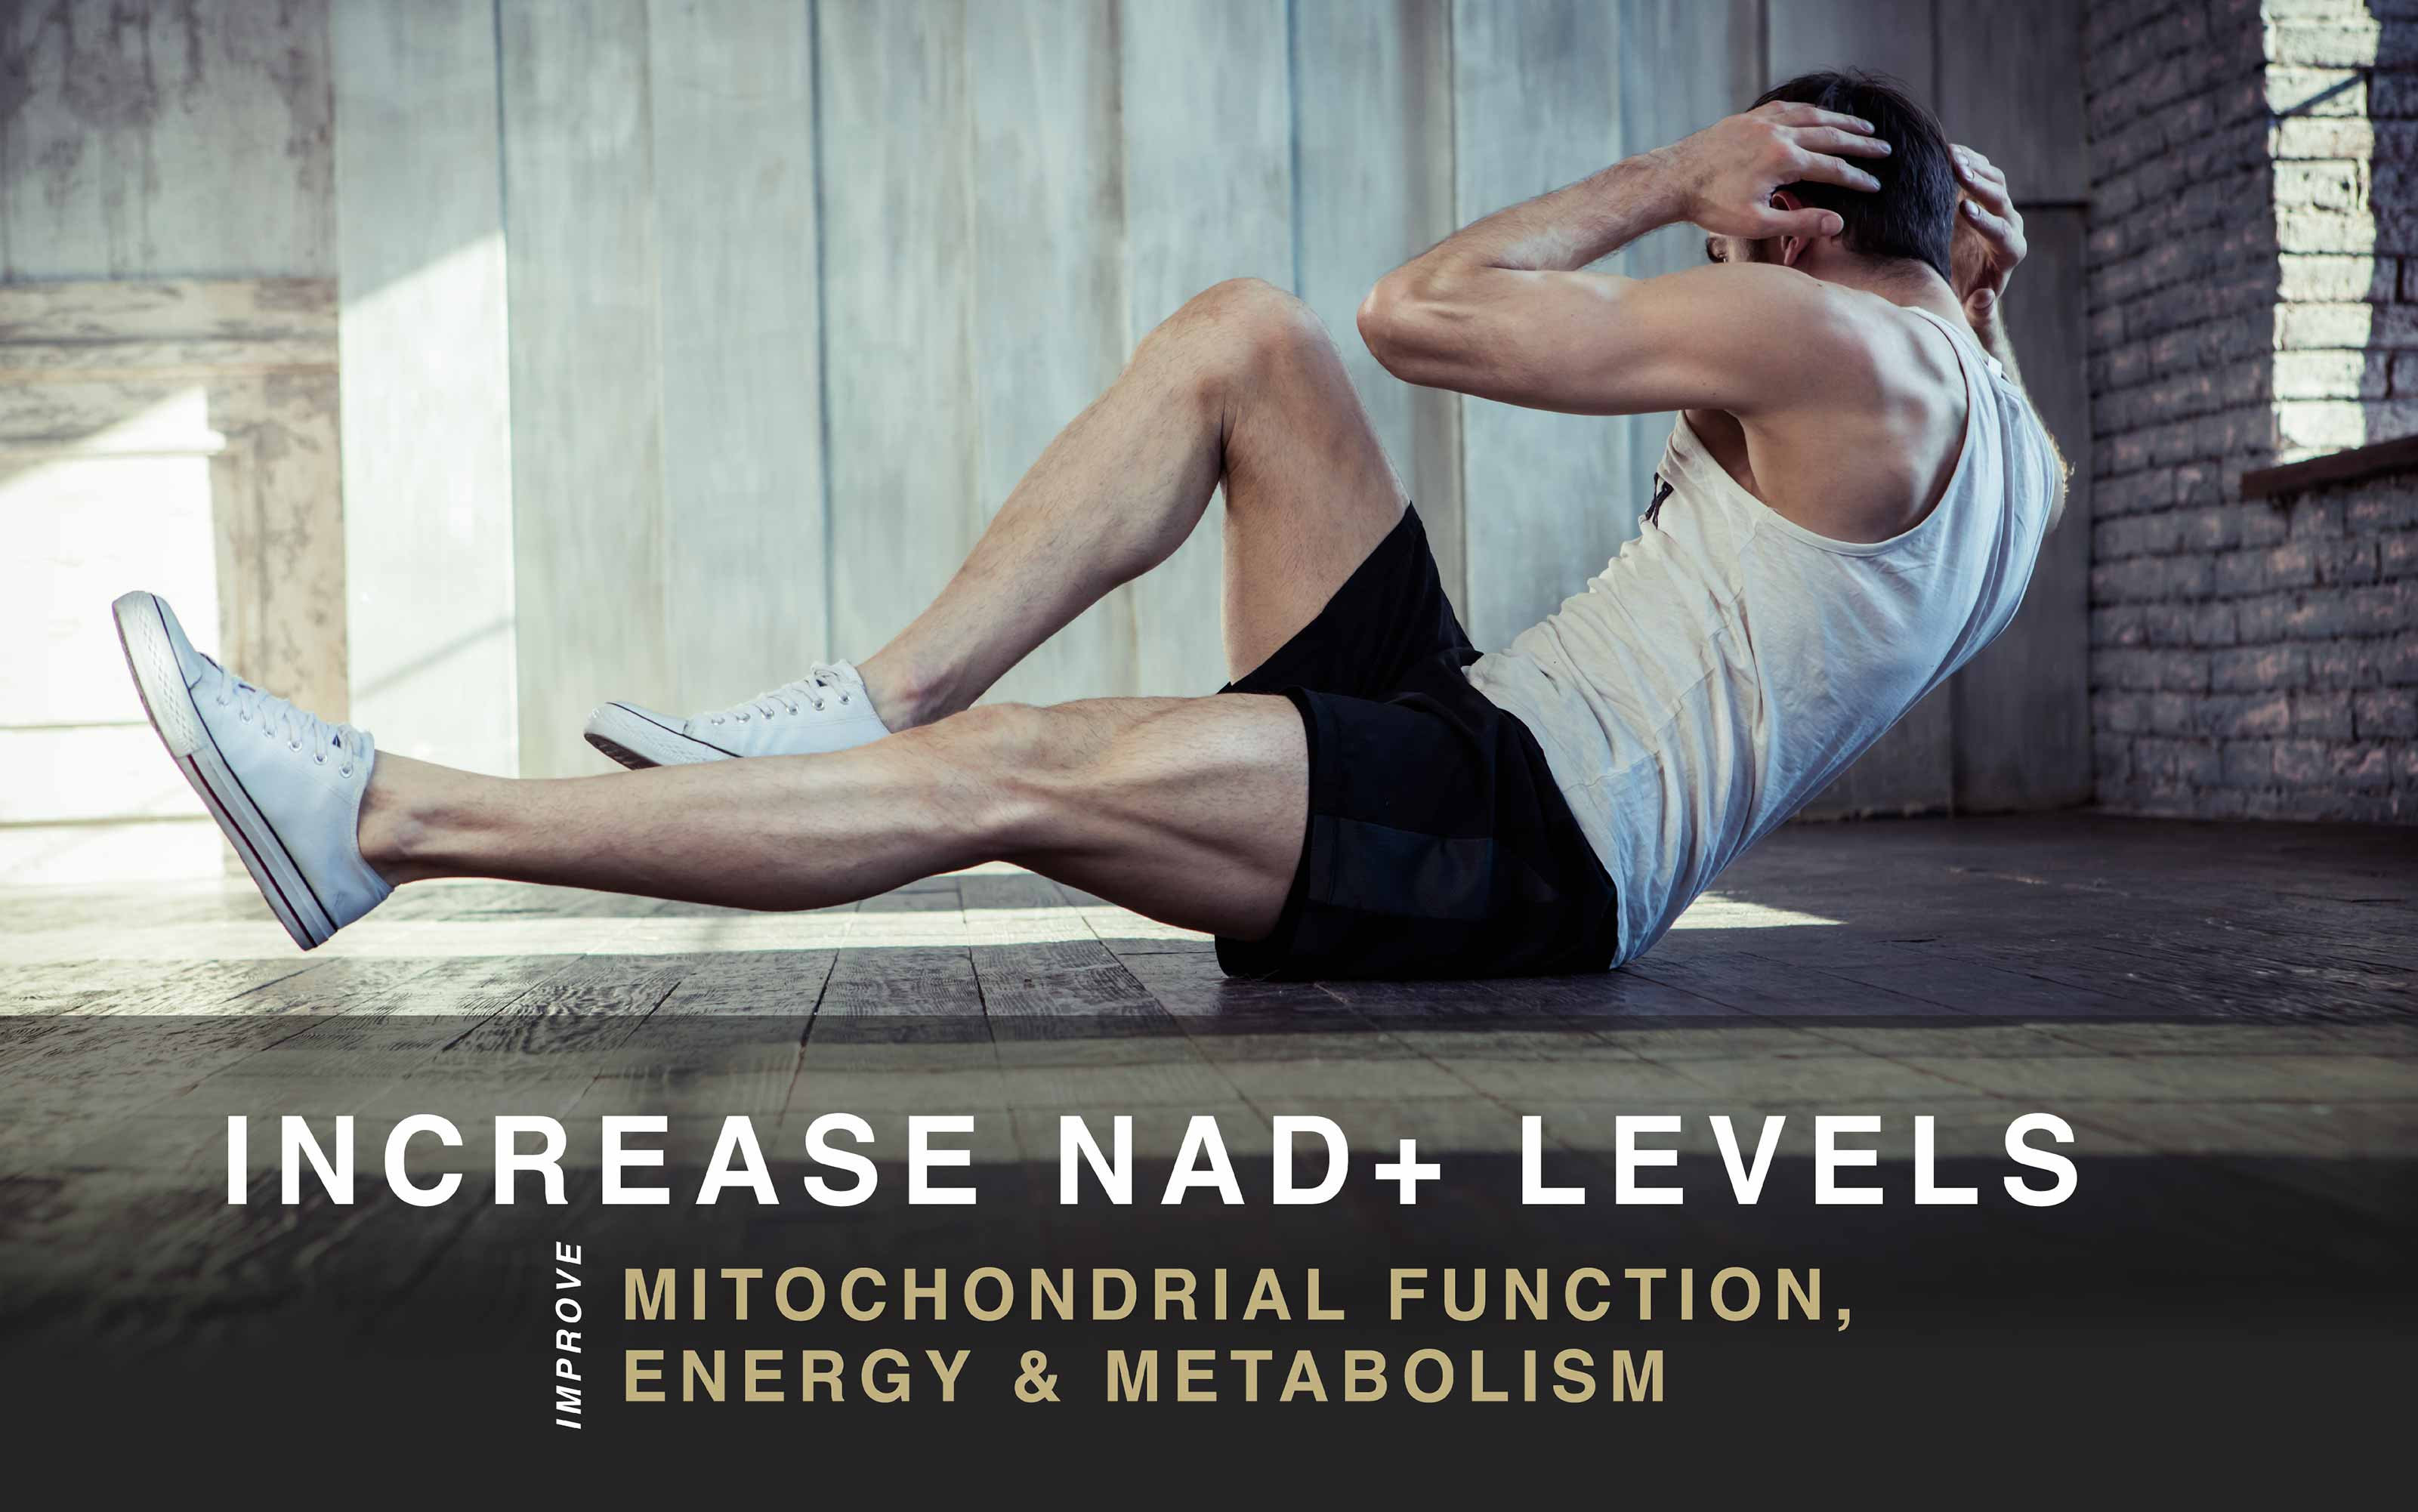 Increase NAD+ Levels and improve mitochondrial function, energy, and metabolism.